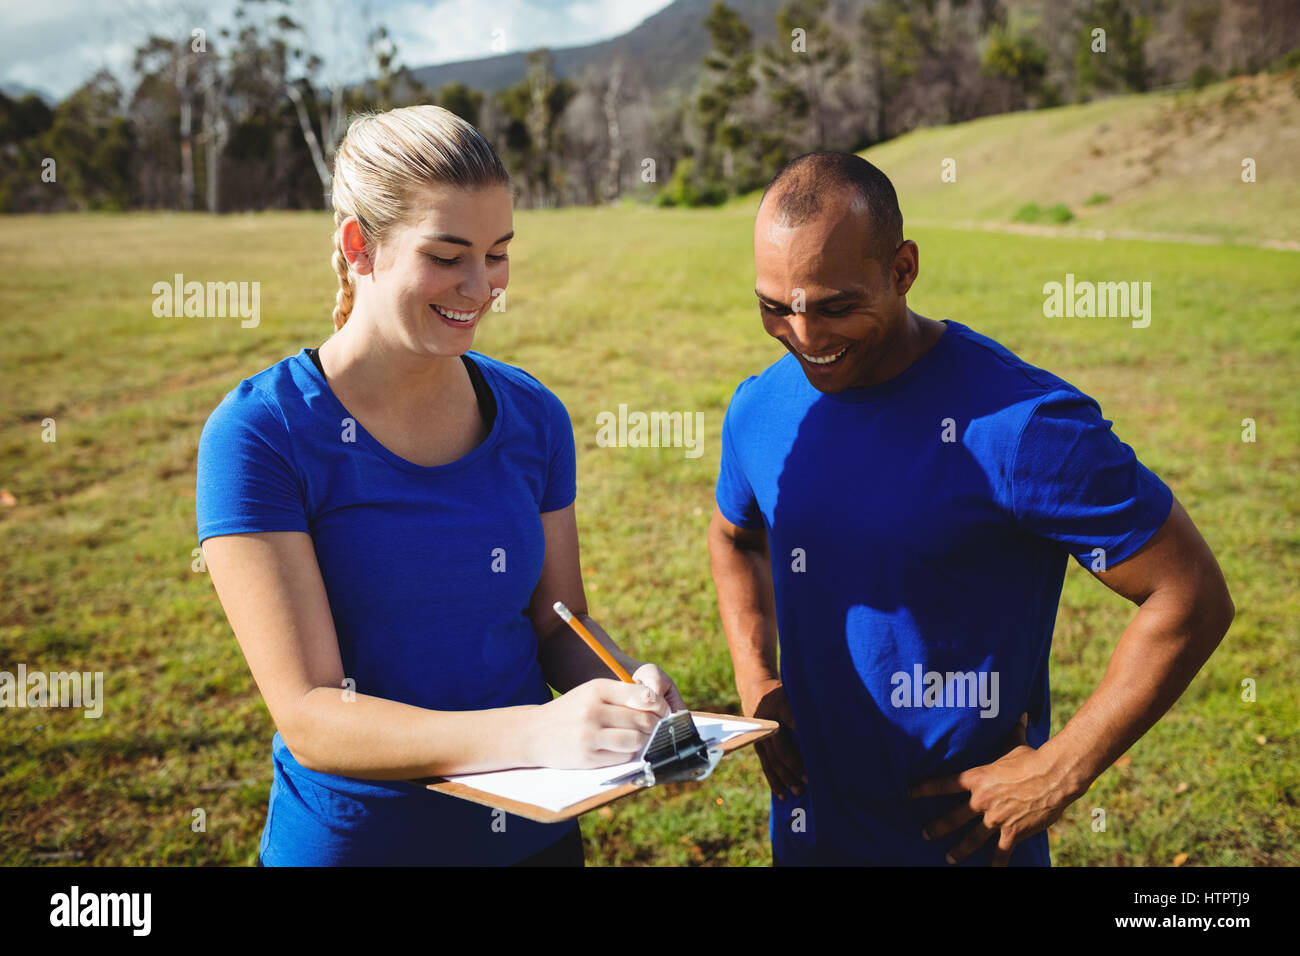 Female trainer instructing a man in bootcamp - Stock Image